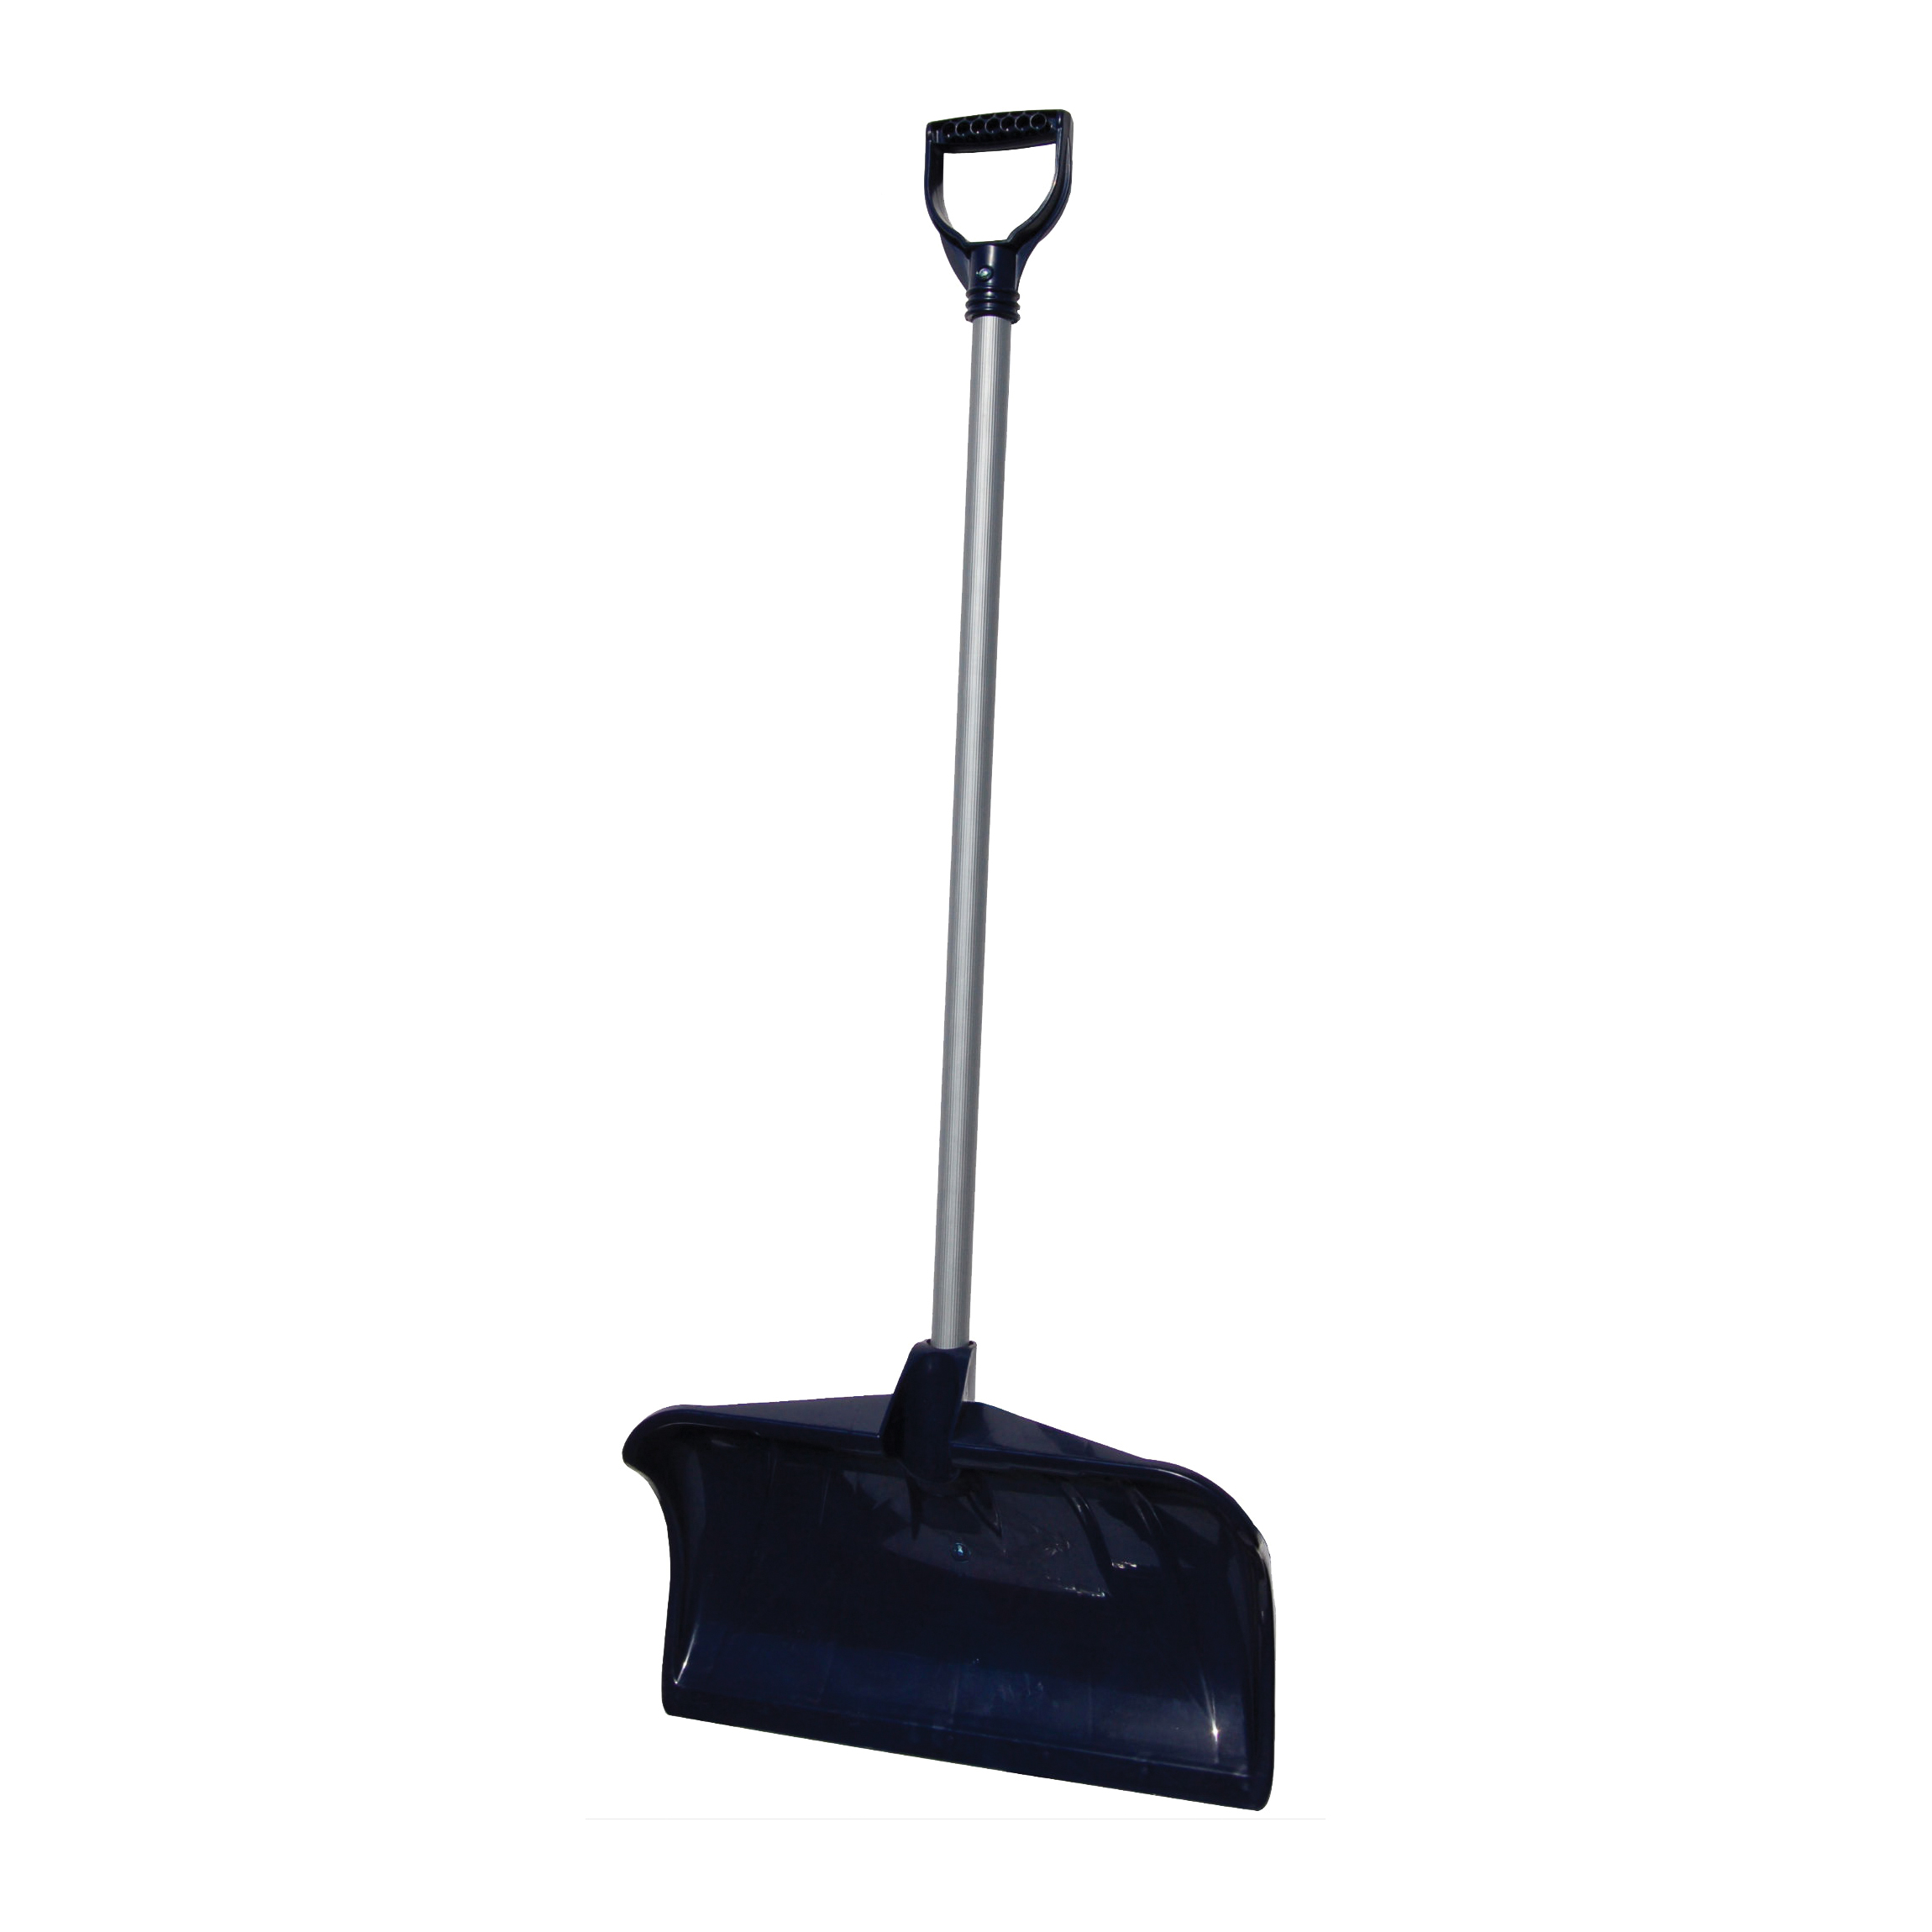 Picture of RUGG 34PD-S Snow Pusher, 20 in W Blade, Polyethylene Blade, Steel Handle, D-Shaped Handle, Navy